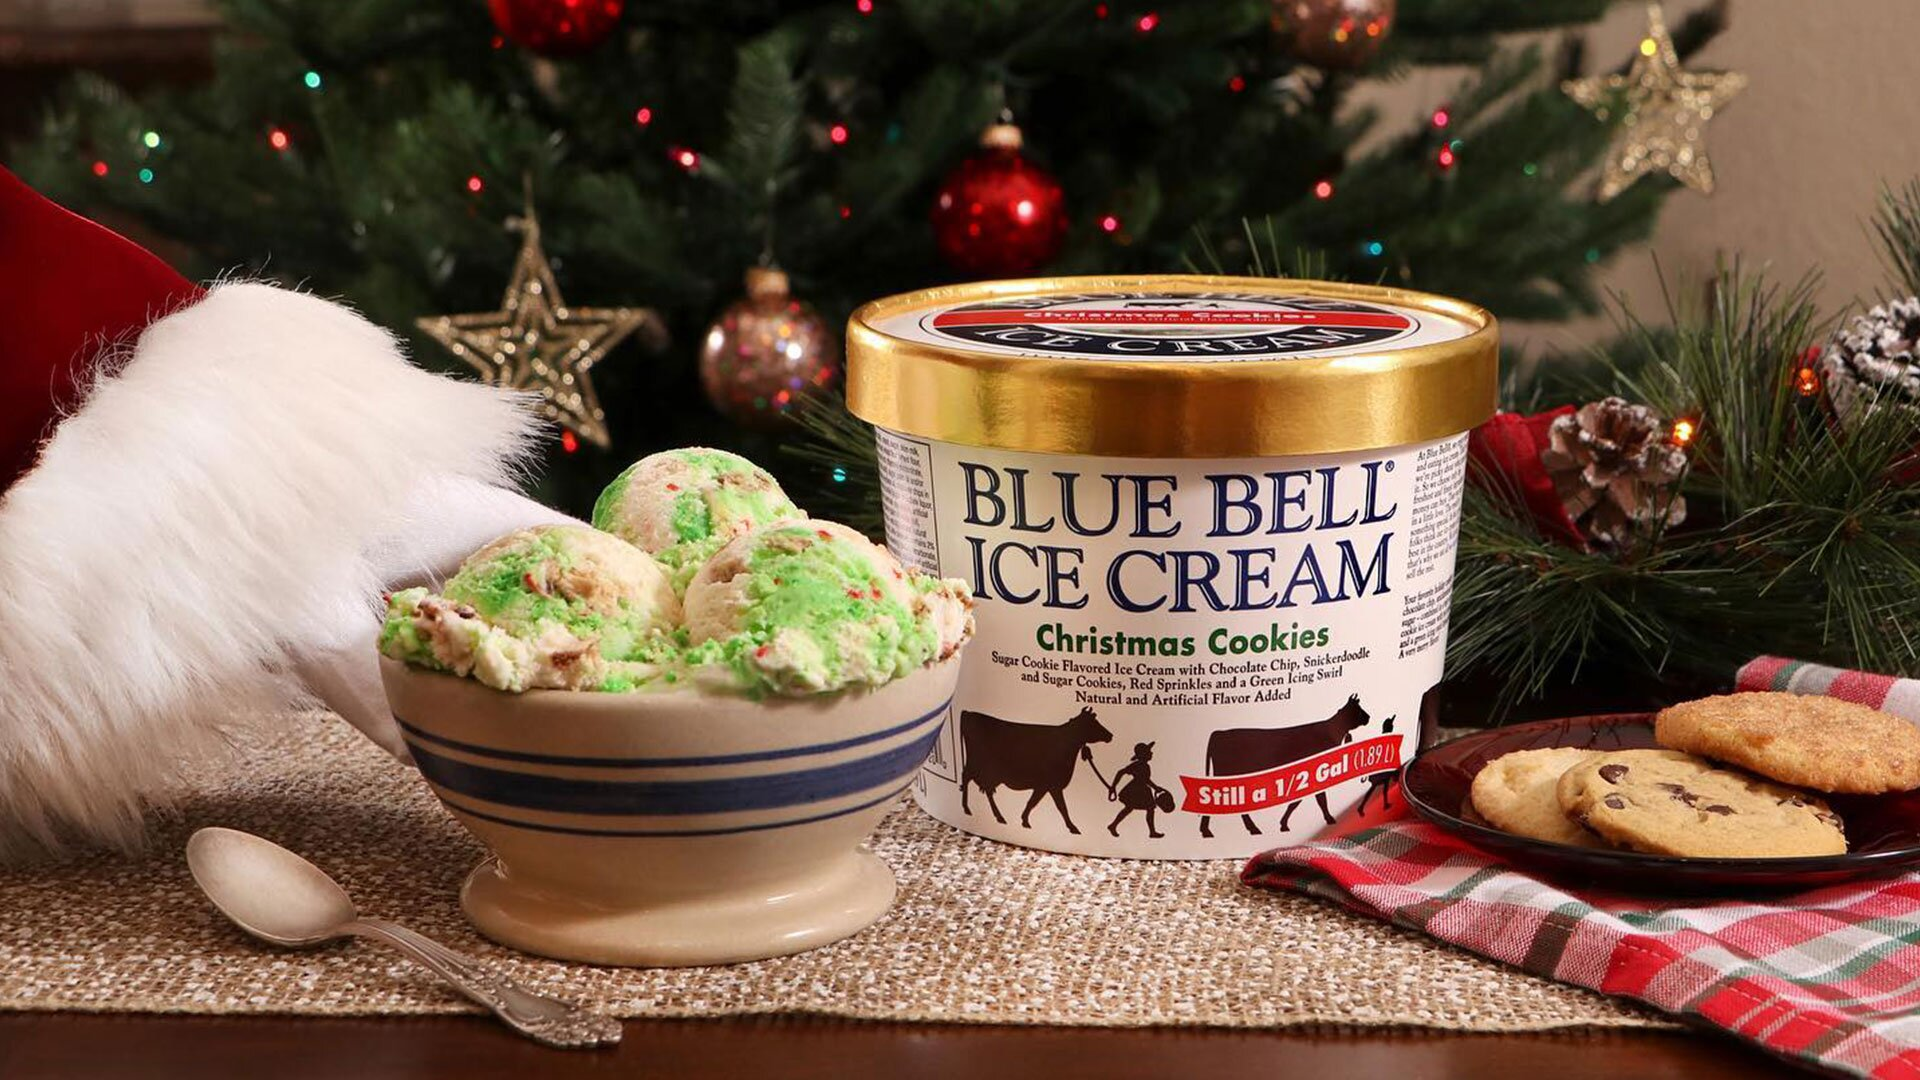 Blue Bell's Christmas Cookies Ice Cream is Back! | Southern Living